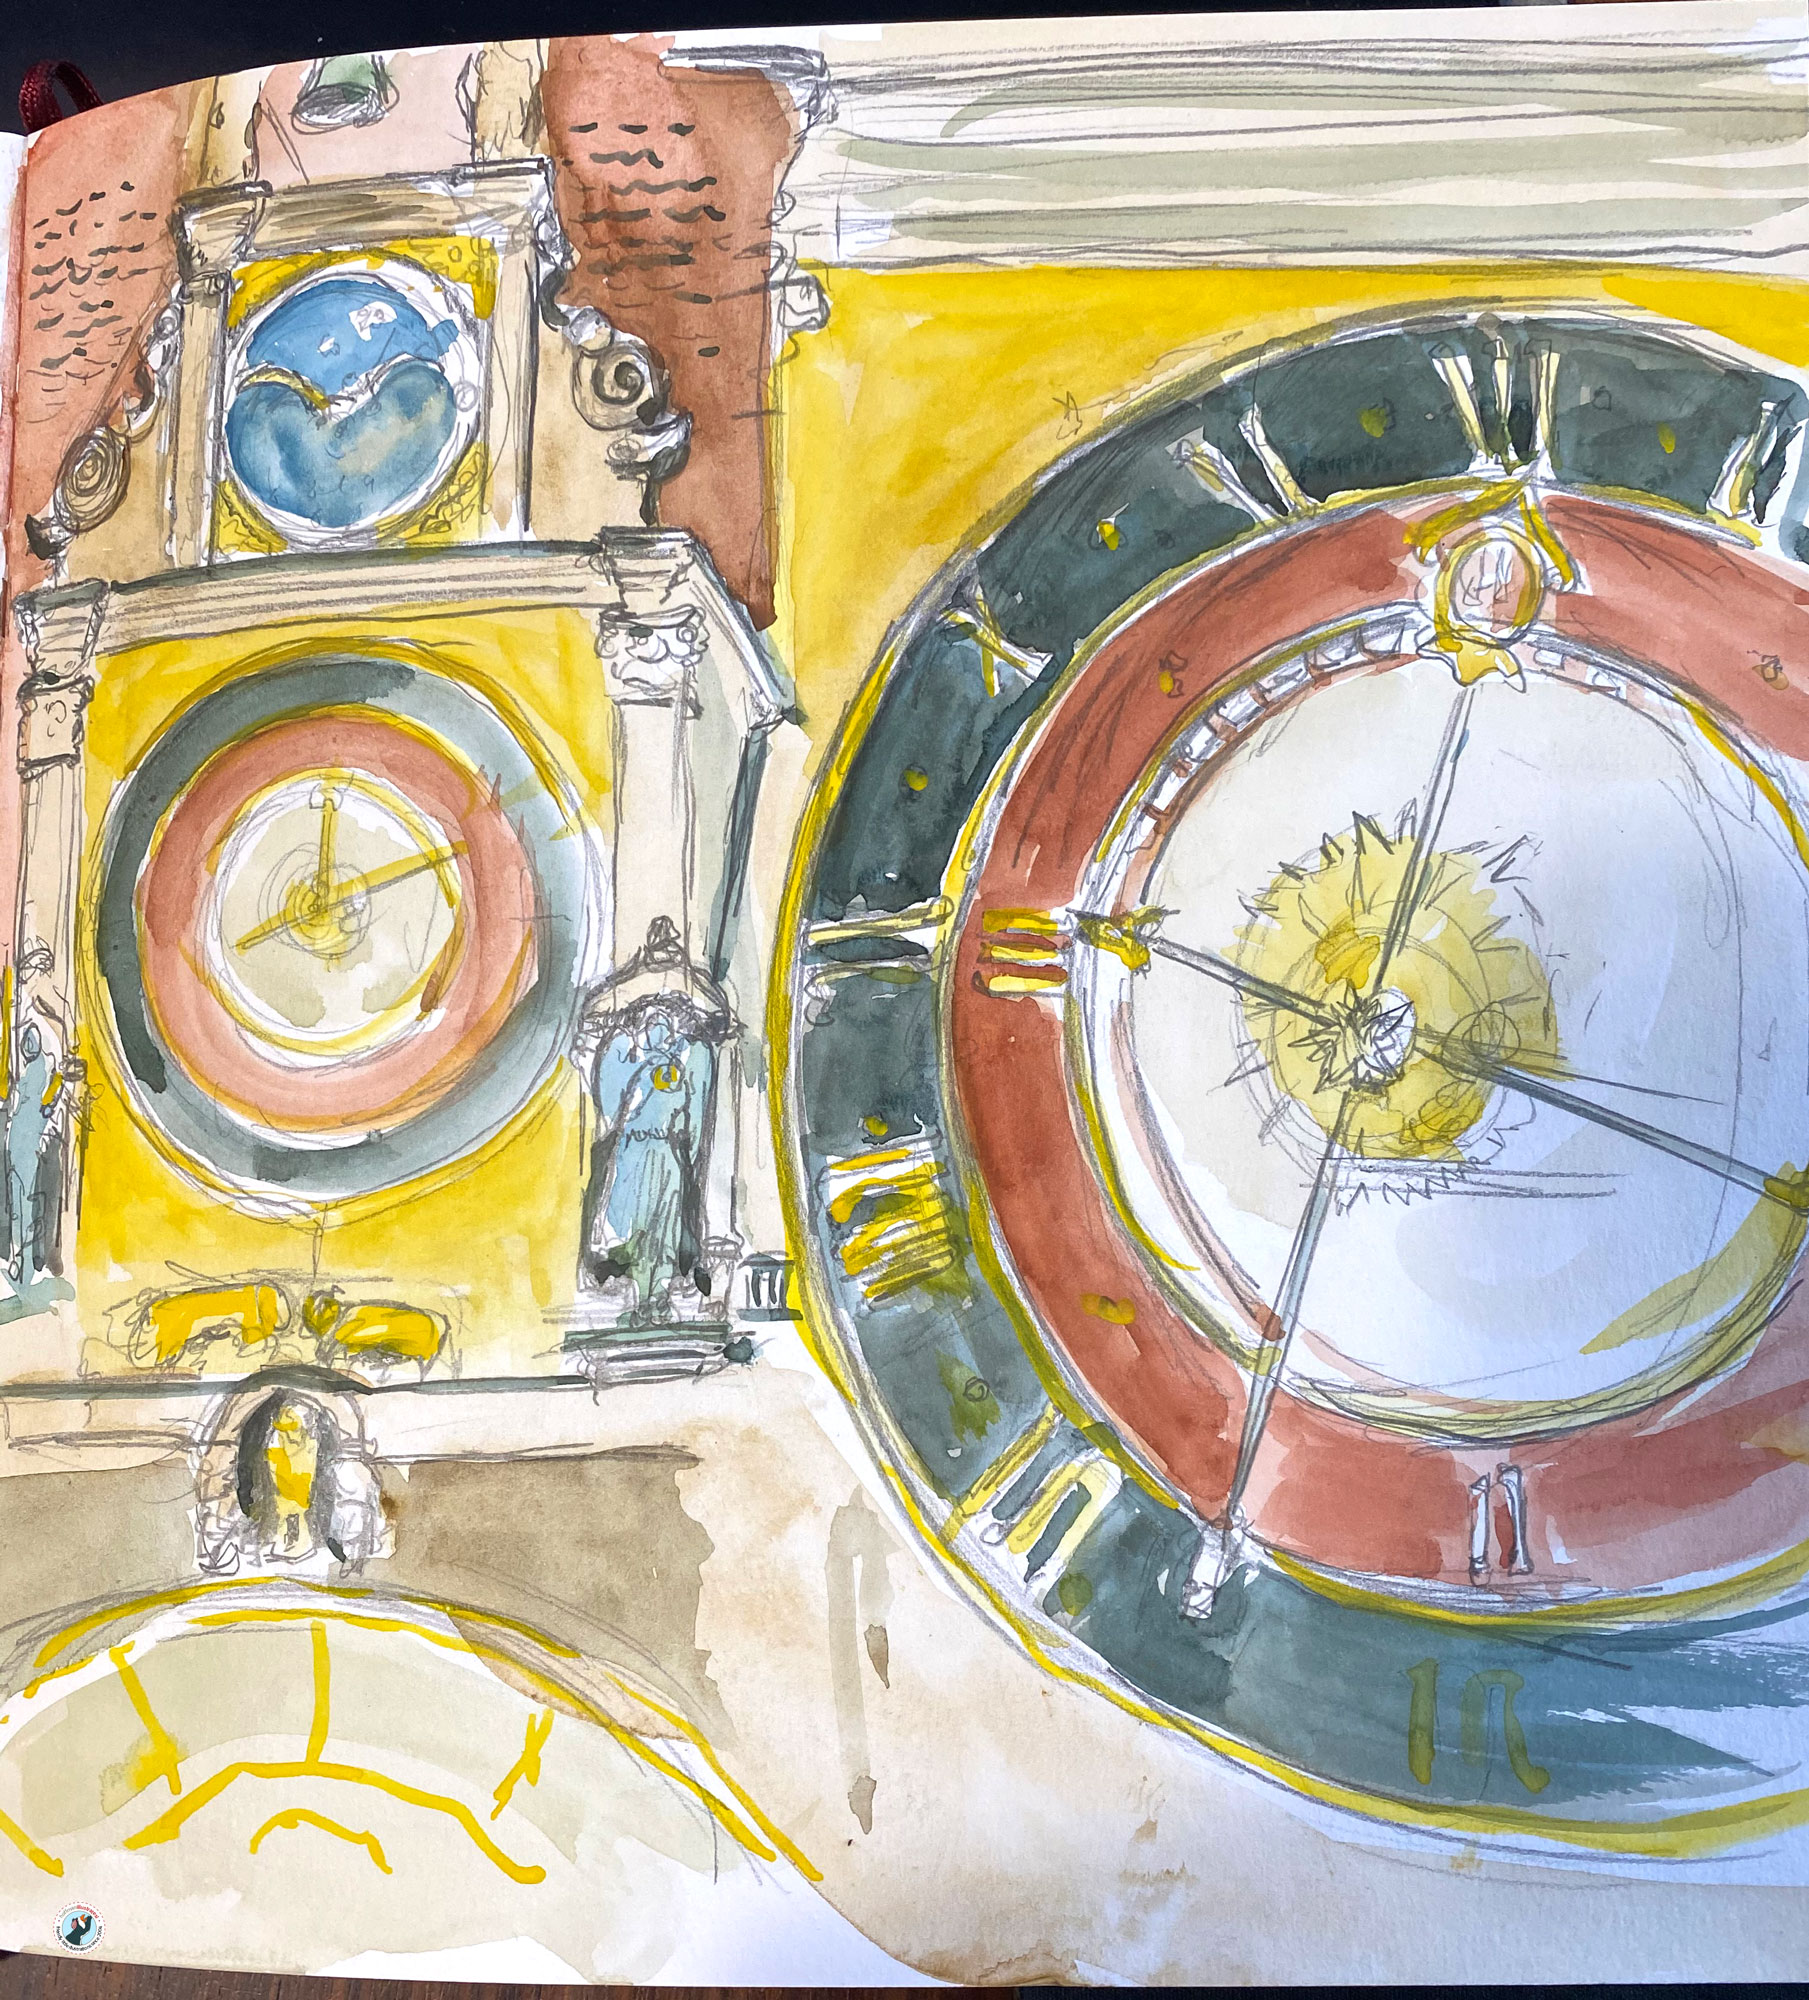 This is a watercolour urban sketch of the famous clock found on Heilbronn's Marketplace.